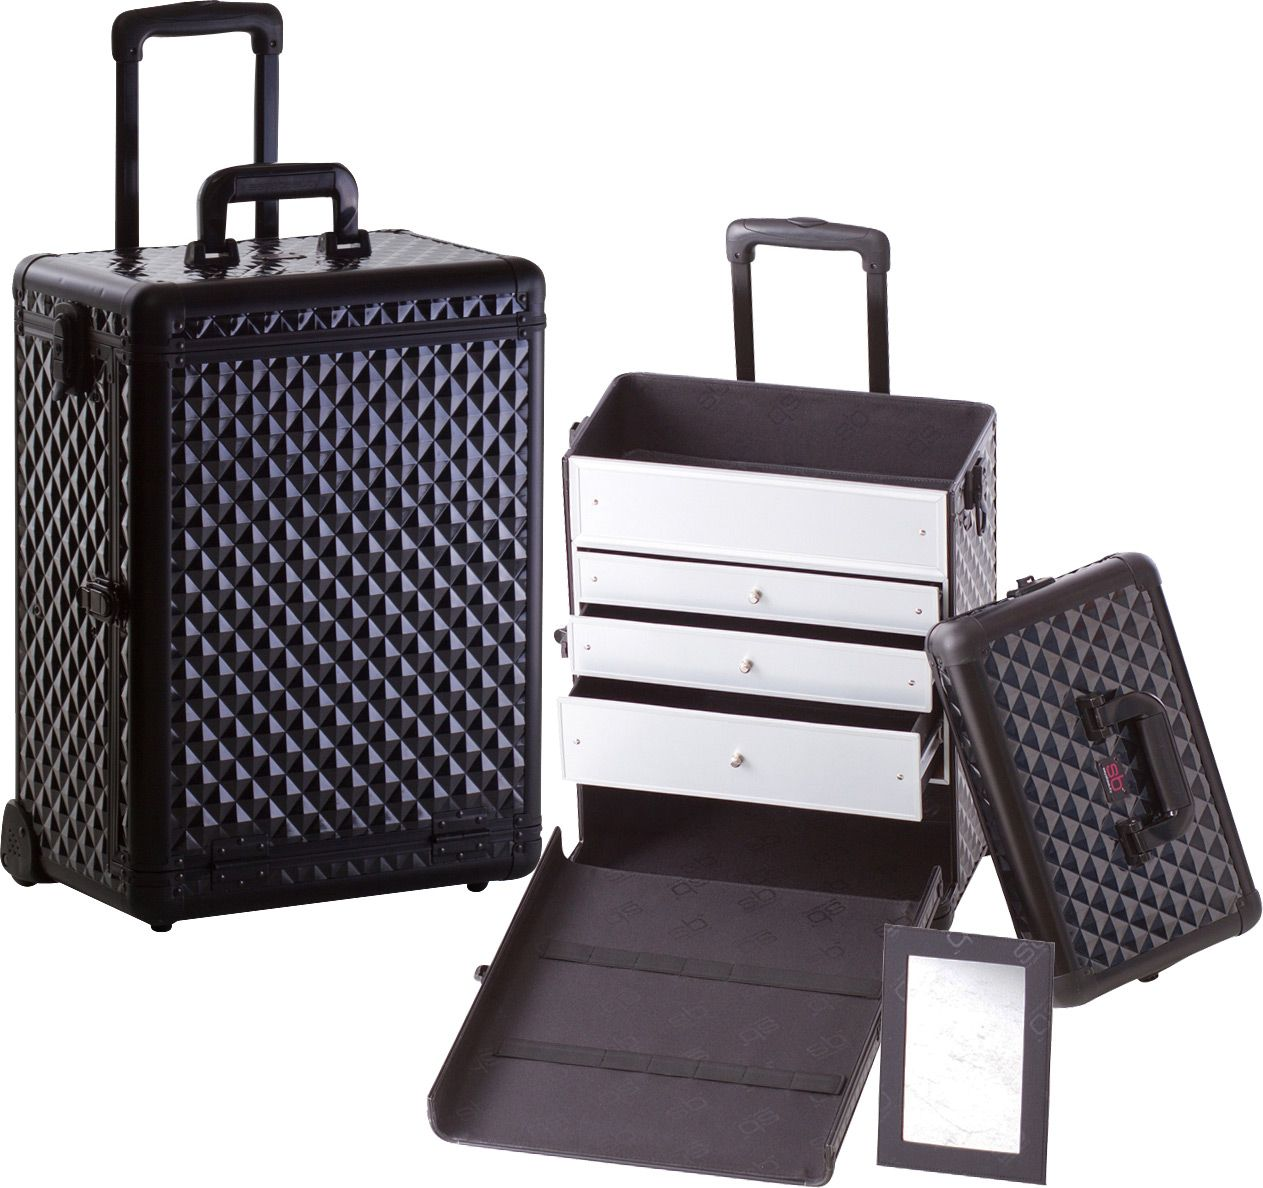 Professional Rolling Makeup Case w/ 3 Drawers All Black